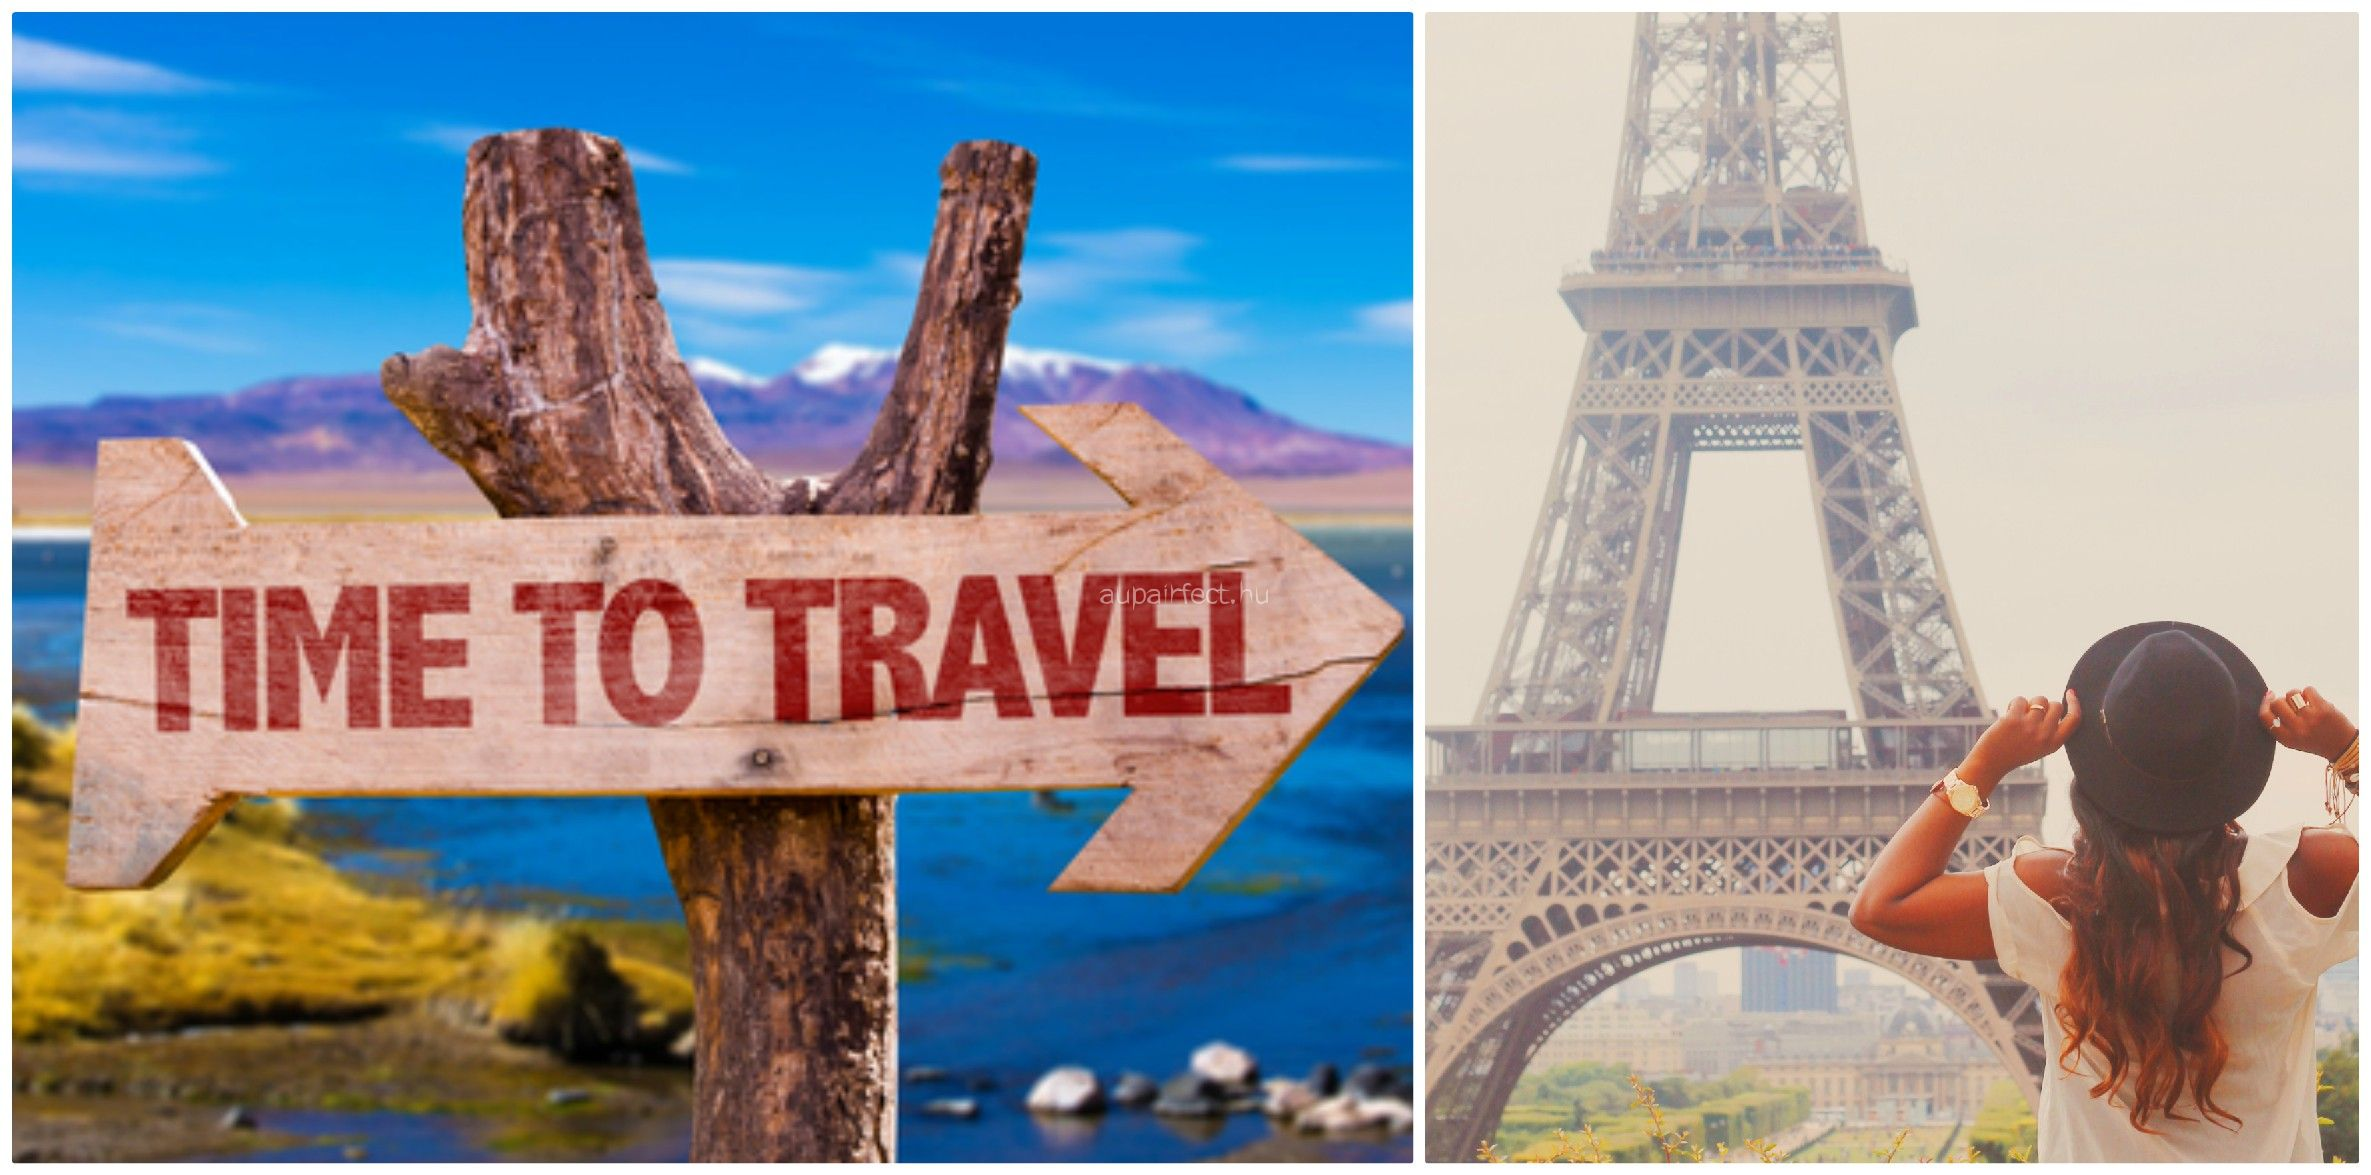 Learn French from native speakers as an au pair